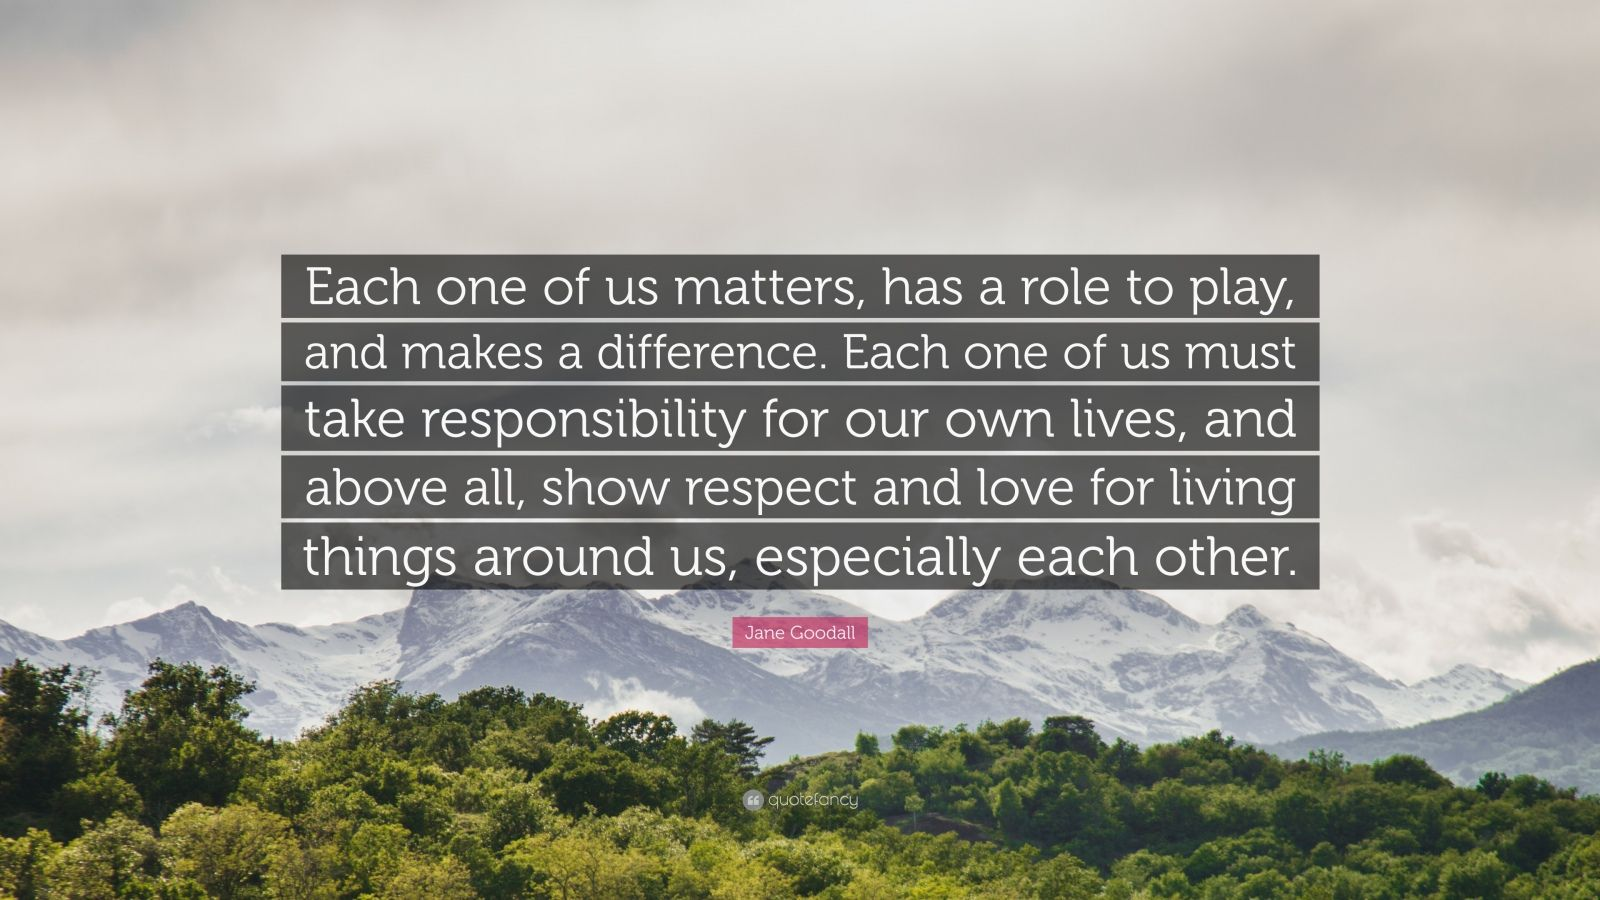 """Jane Goodall Quote: """"Each one of us matters, has a role to play, and makes a difference. Each one of us must take responsibility for our own lives, and above all, show respect and love for living things around us, especially each other."""""""